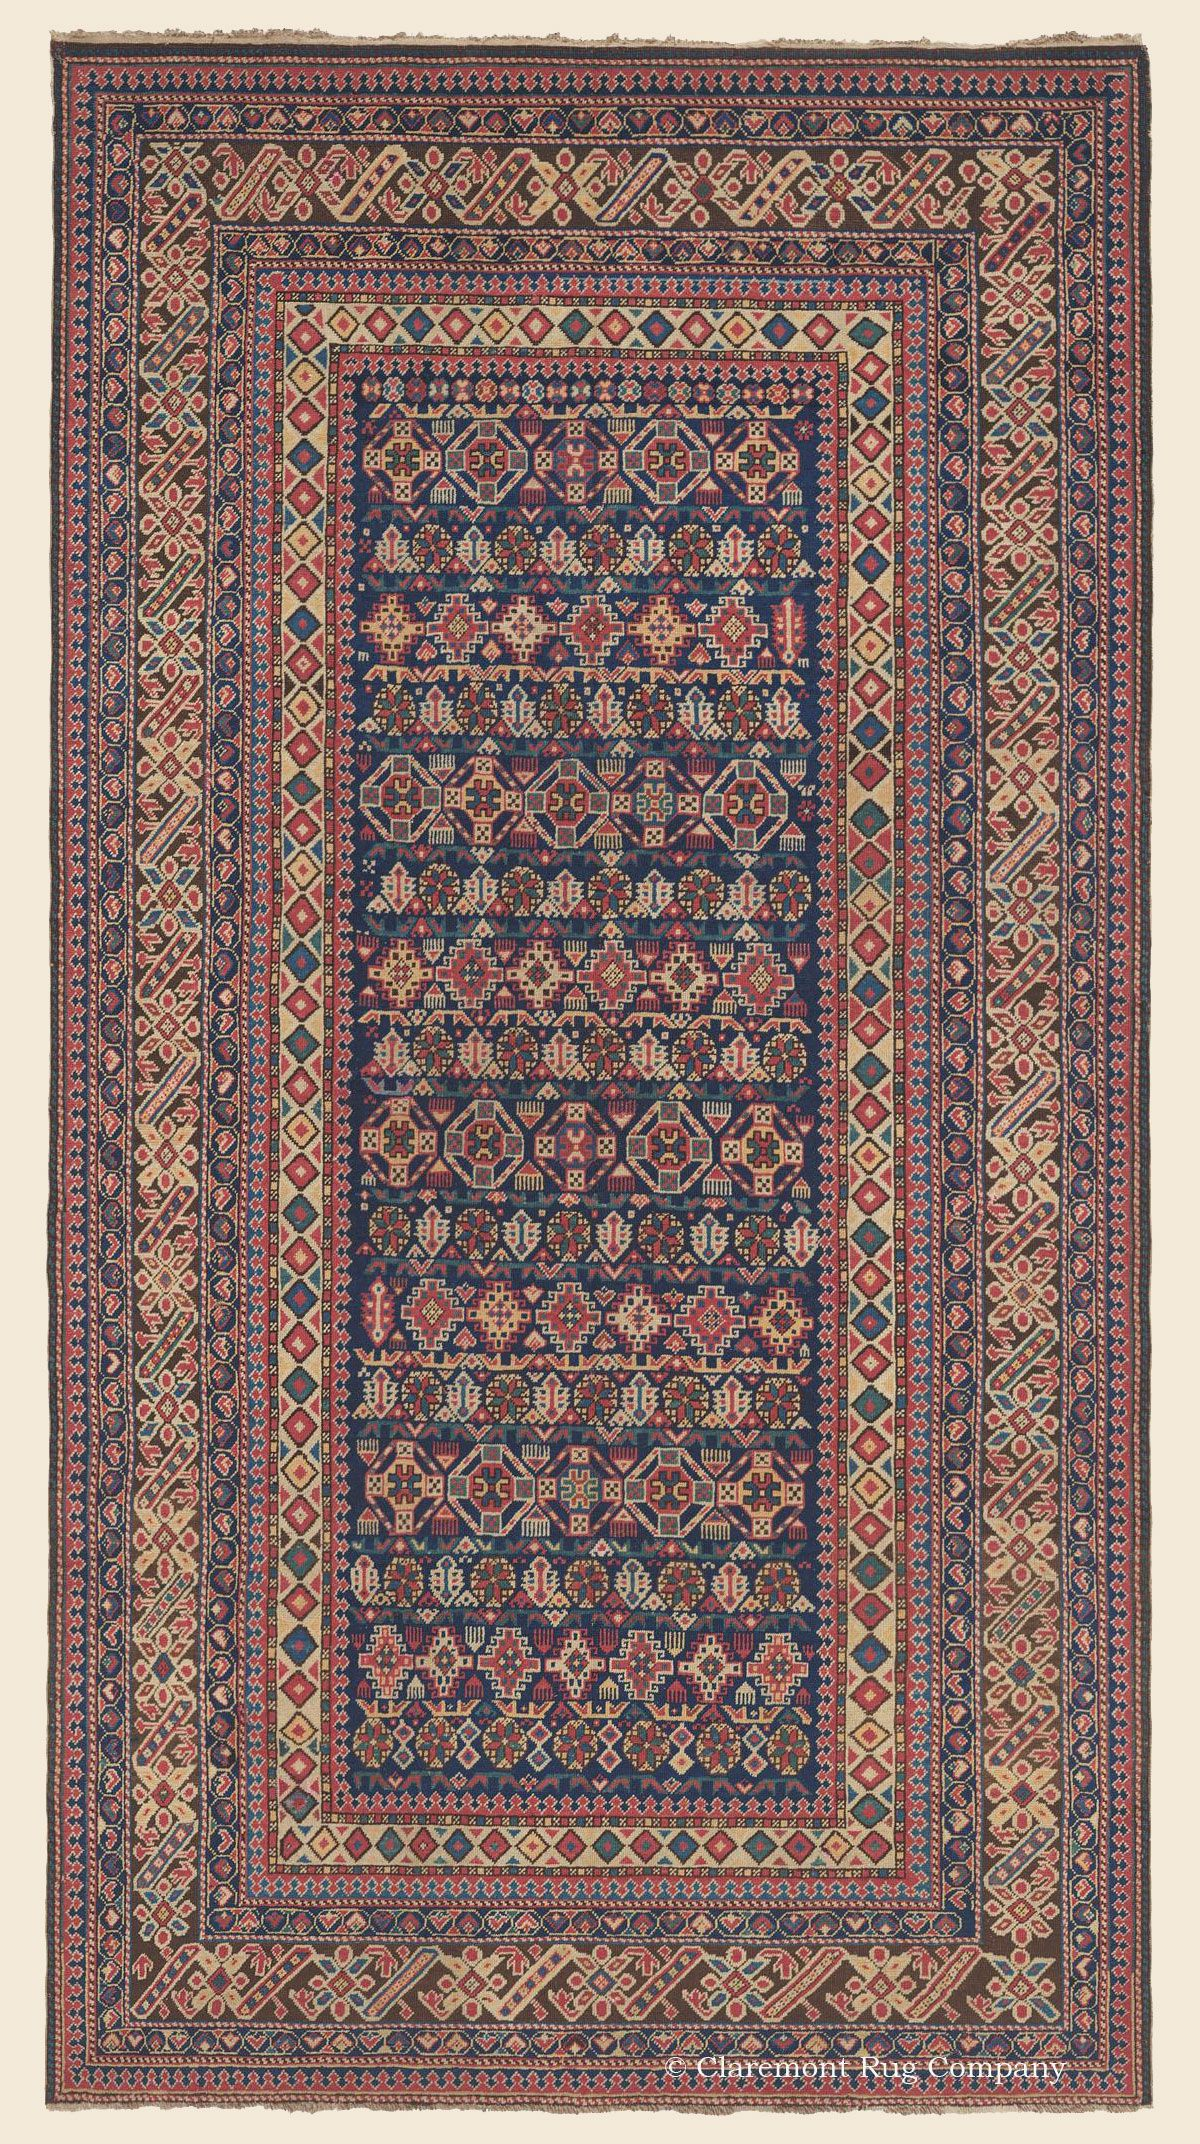 An Antique 4 10 X 9 0 3rd Quarter 19th Century Caucasian Chi Chi Rug In 2020 Claremont Rug Company Antiques Rugs